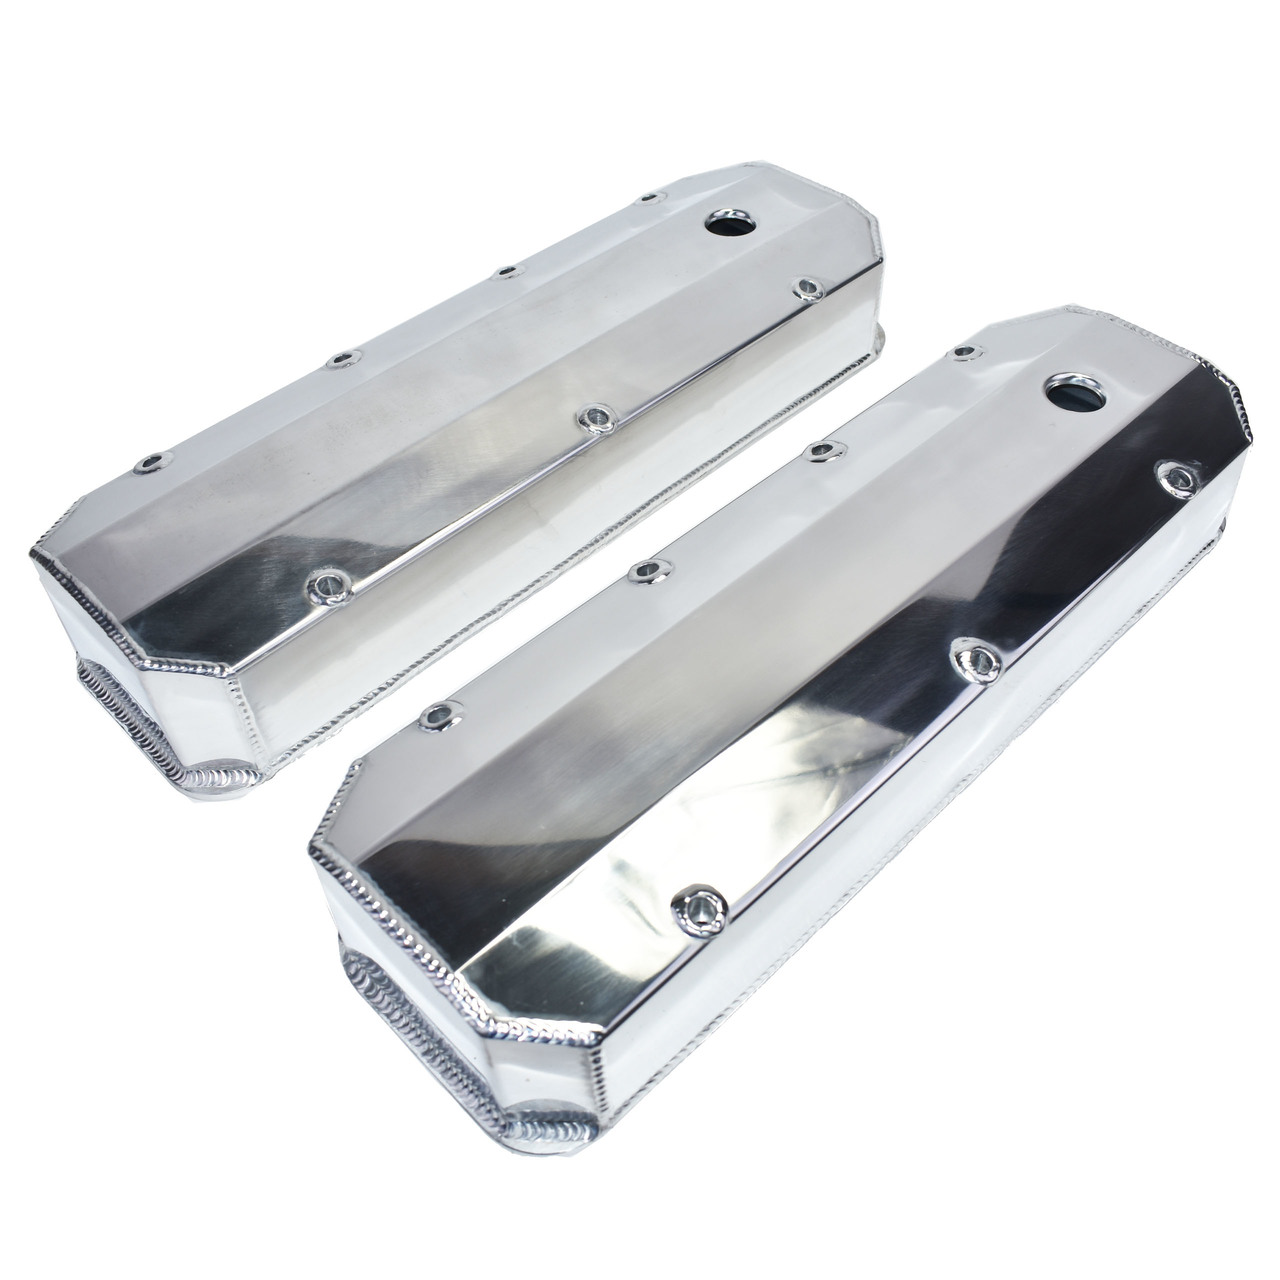 A-Team Performance BBC Fabricated Tall Aluminum Valve Covers Polished Big Block Chevy 396 427 454